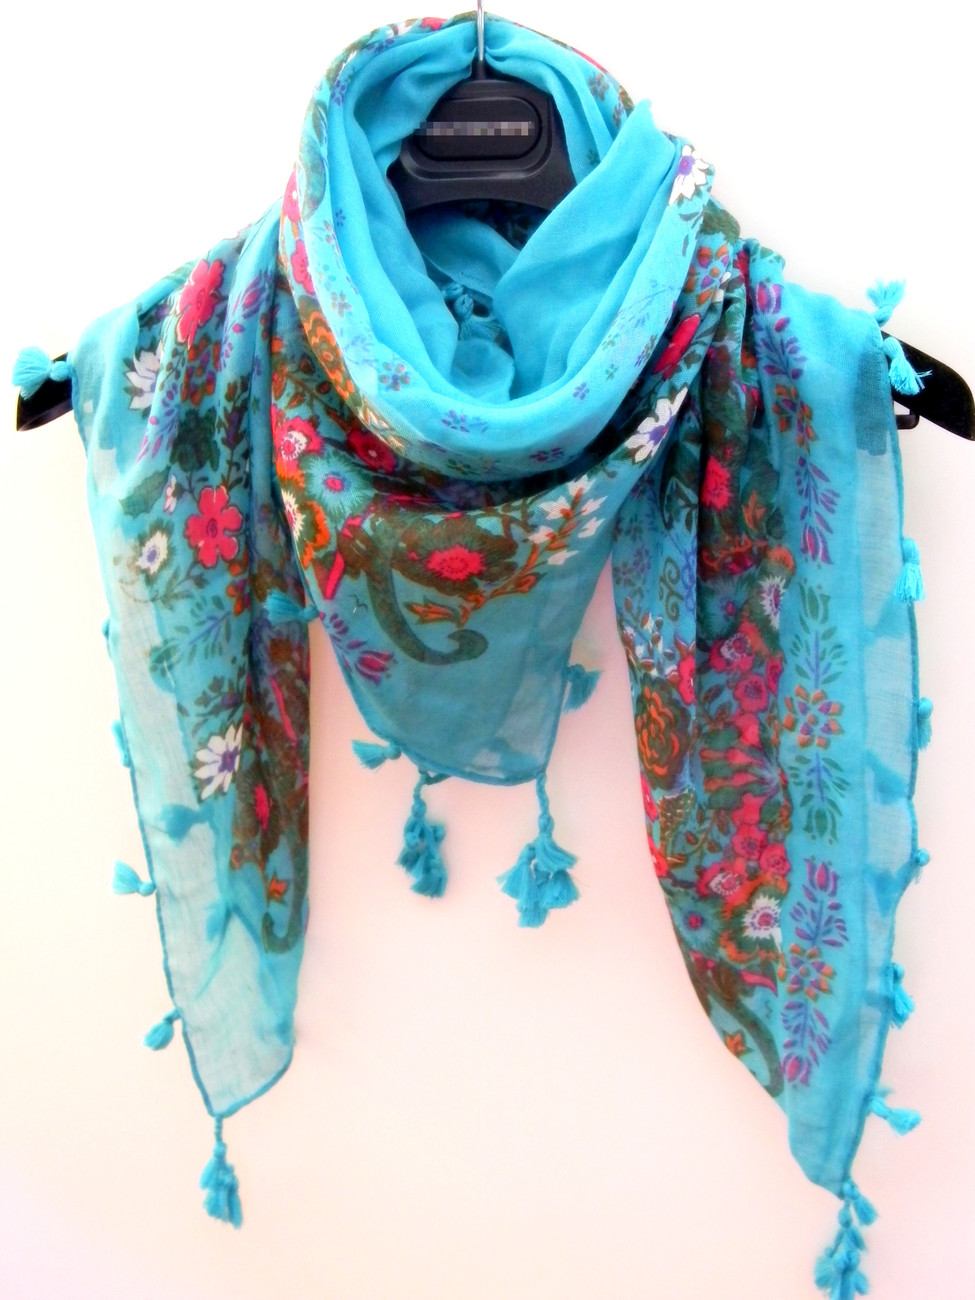 Fashion Blue Square Scarf  Shawl Wrap Decorative With Tassels US Canada FreeShip